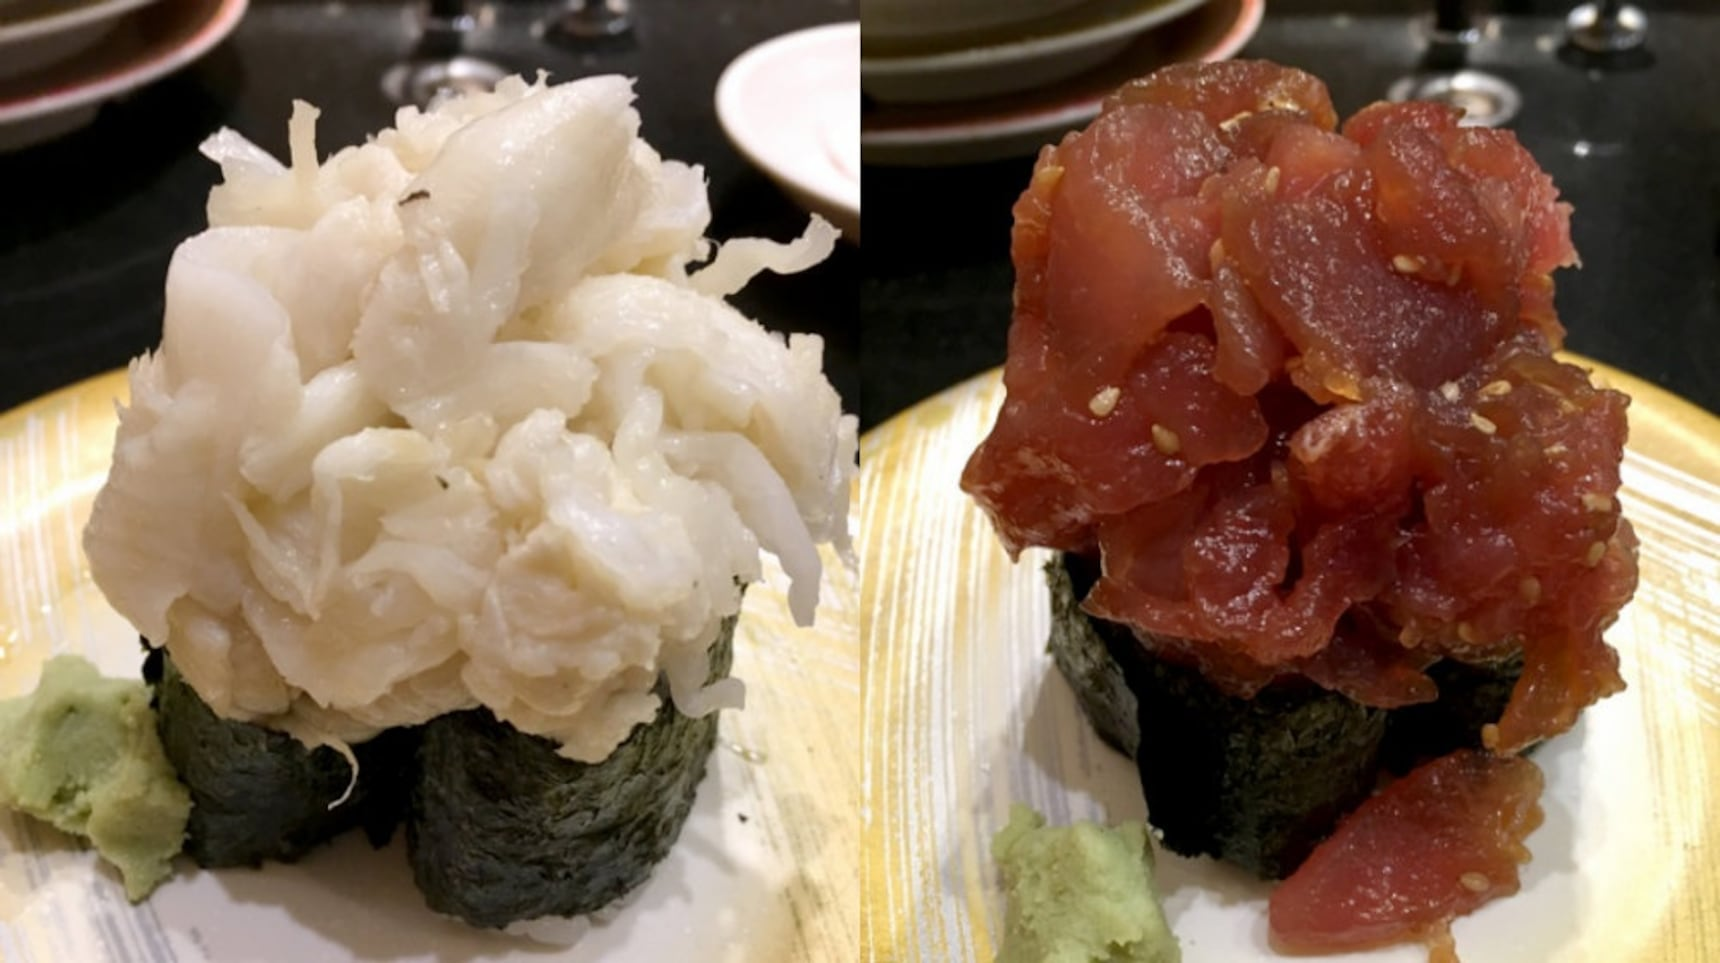 Mountain-Sized Servings of Sushi in Ueno